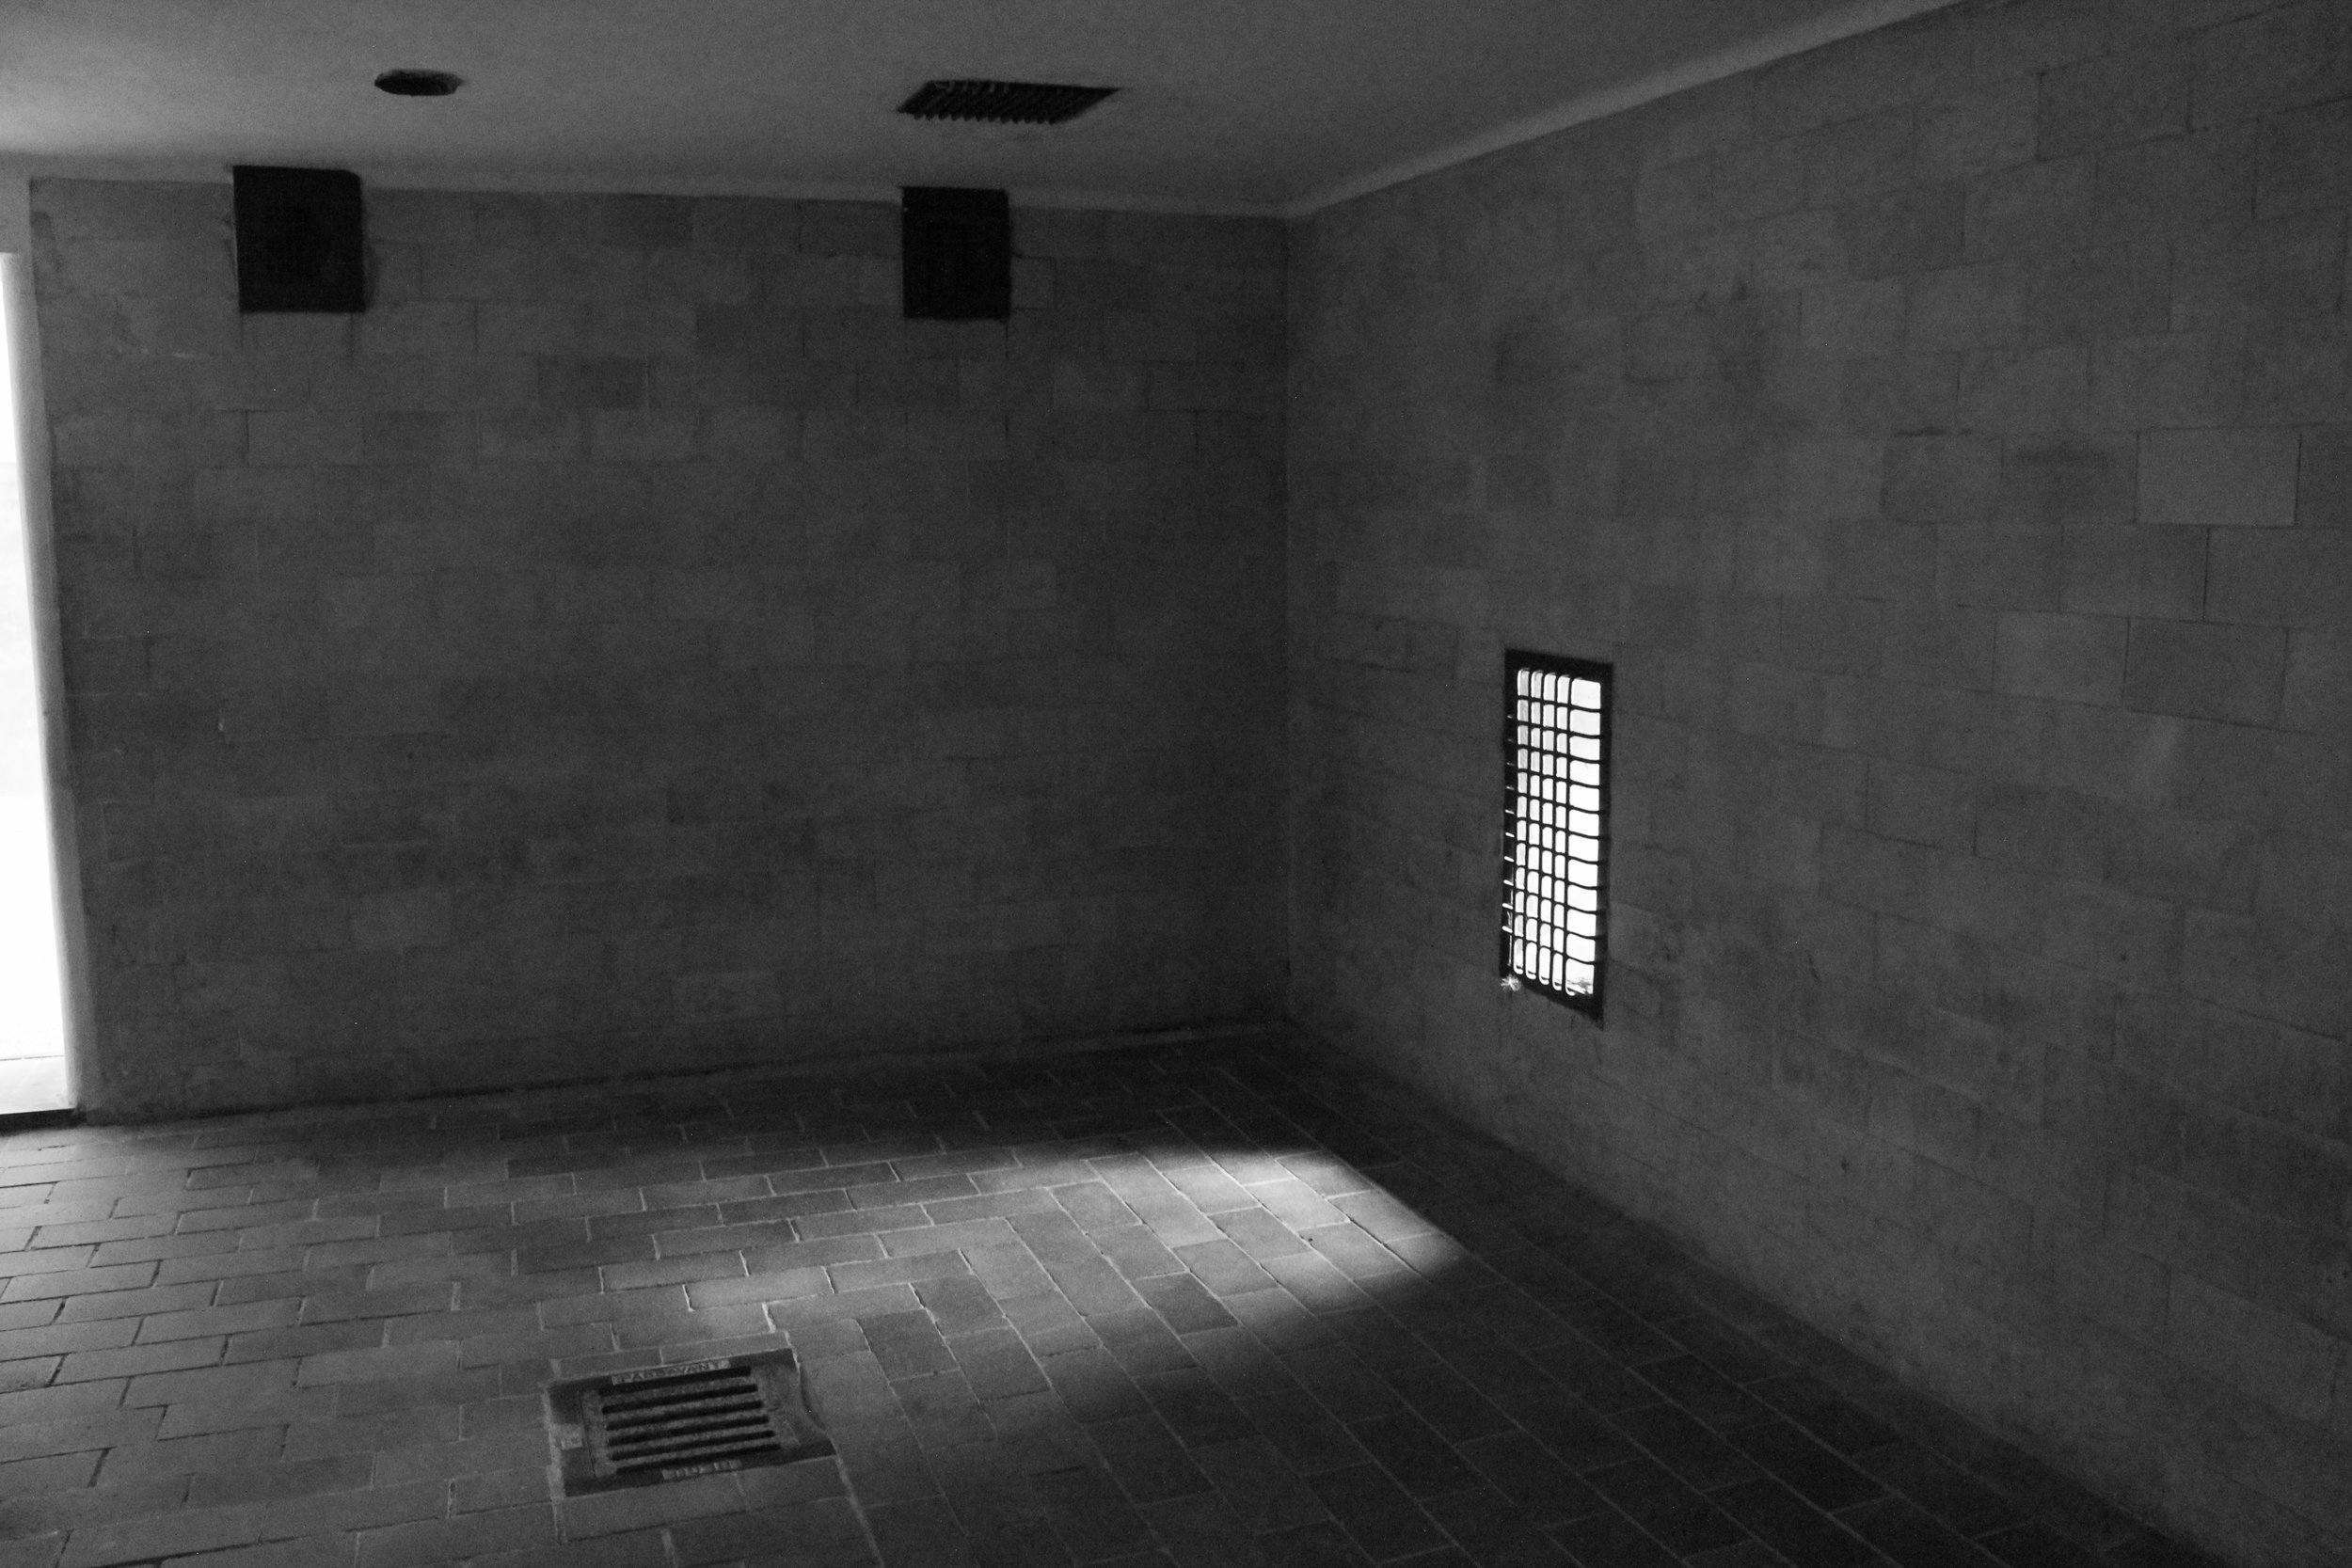 Inside a renovated gas chamber.